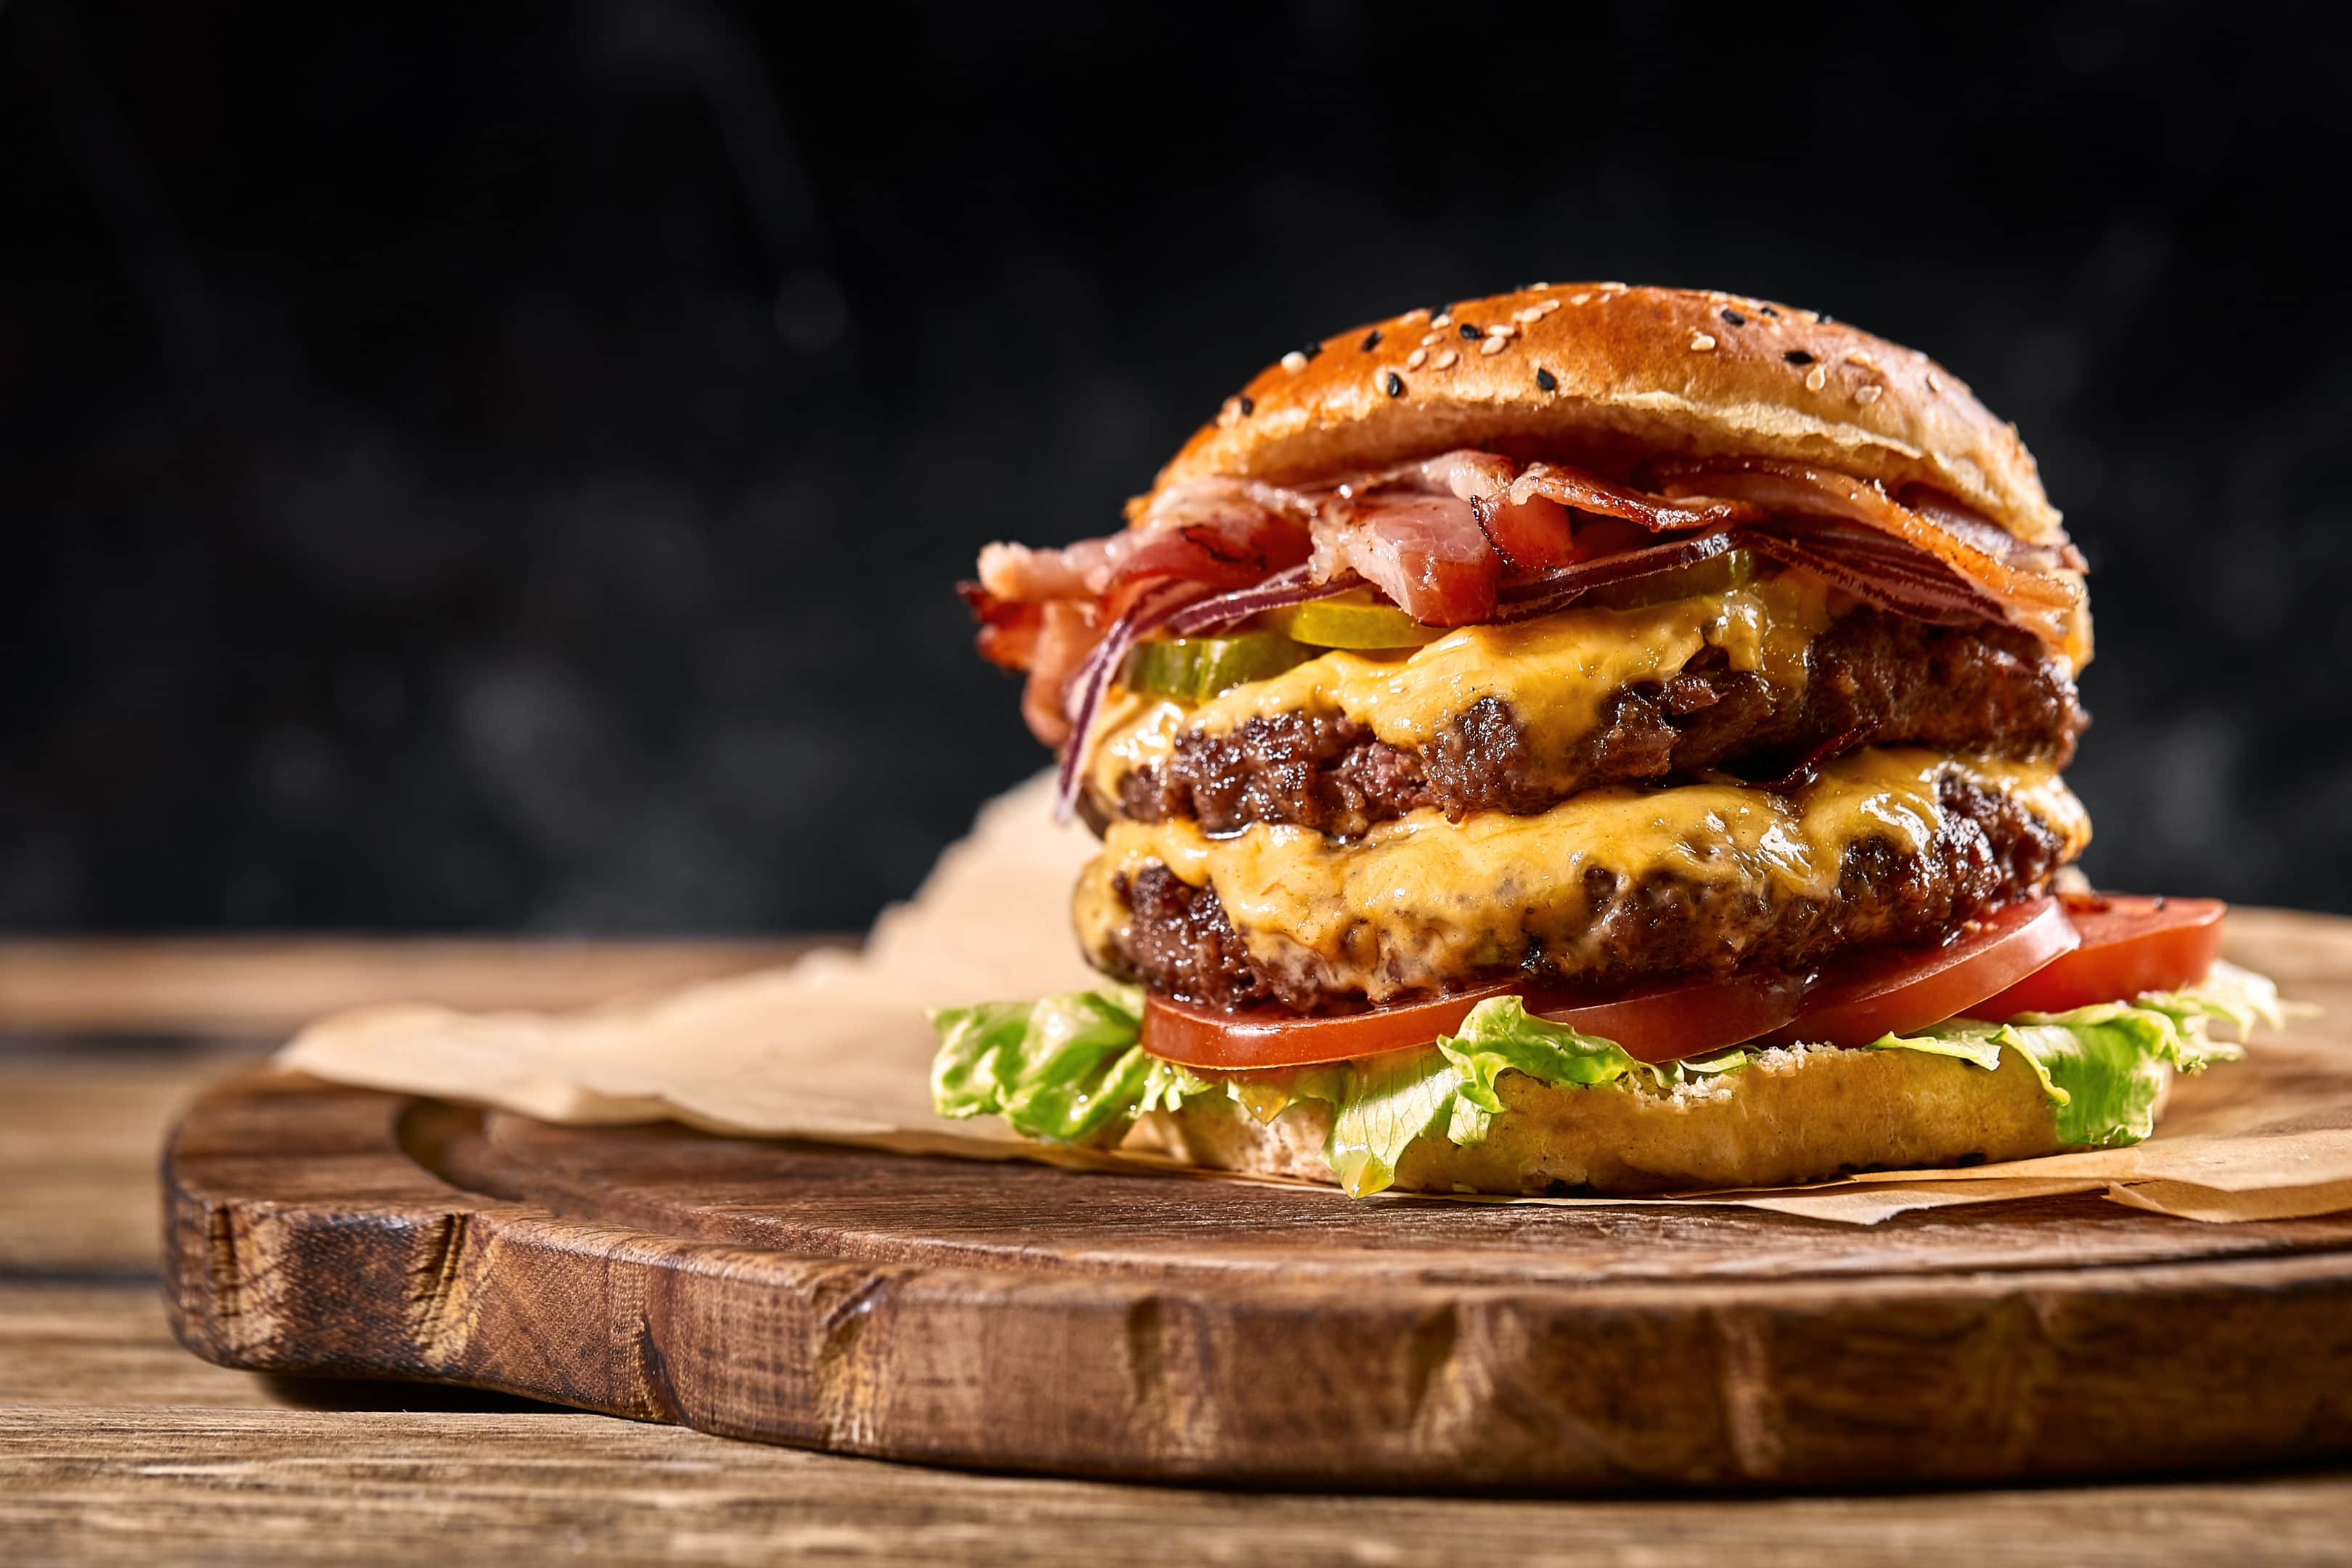 Juicy american burger cheeseburger with two beef patties and sauce on wooden board